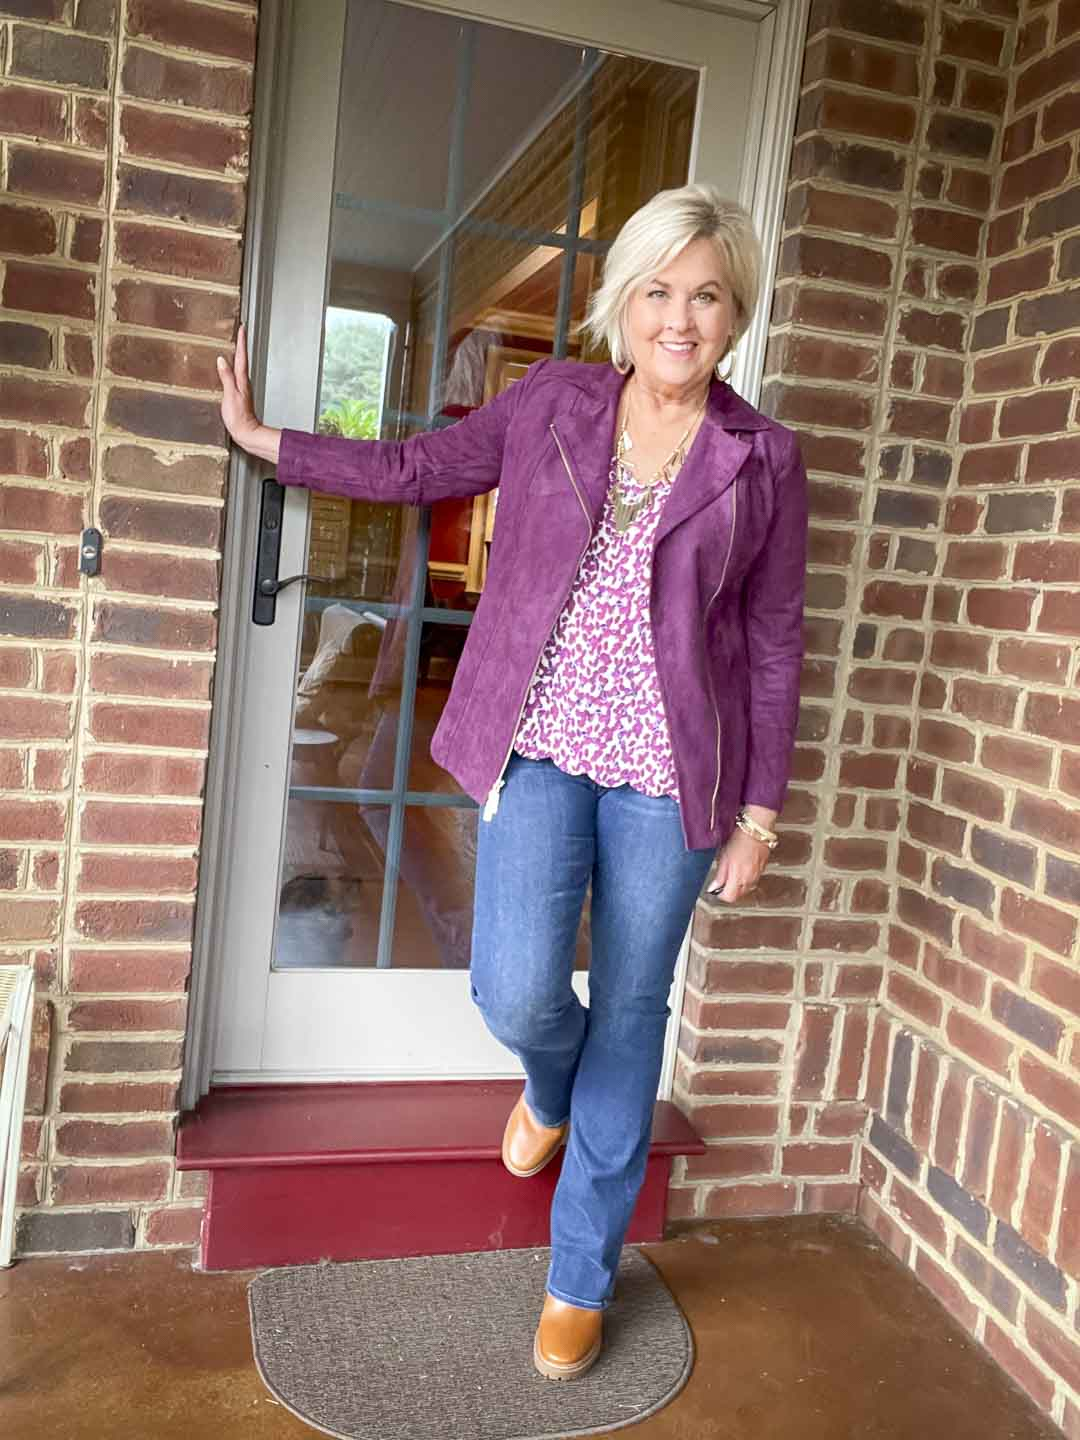 Over 40 fashion blogger, Tania Stephens is wearing a plum moto jacket, a camisole, bootcut jeans, and lug boots